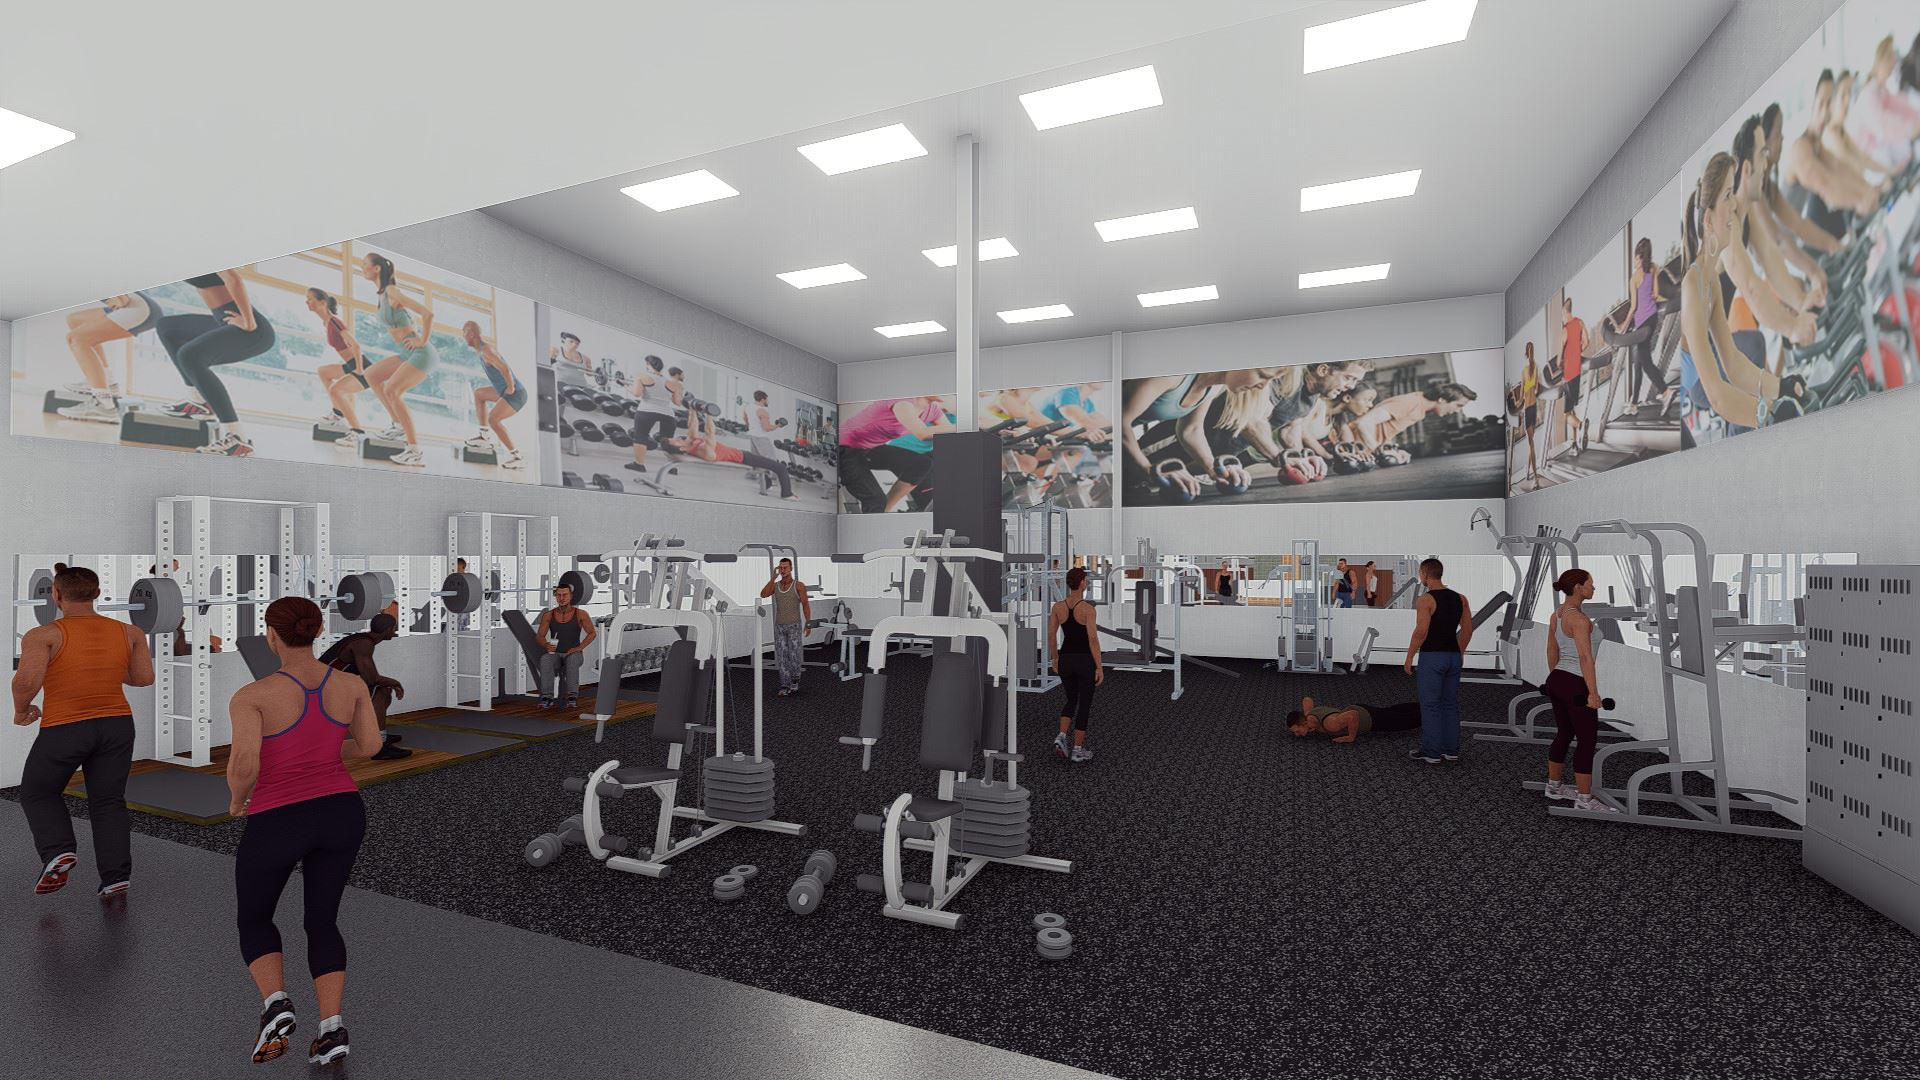 Weightroom rendering